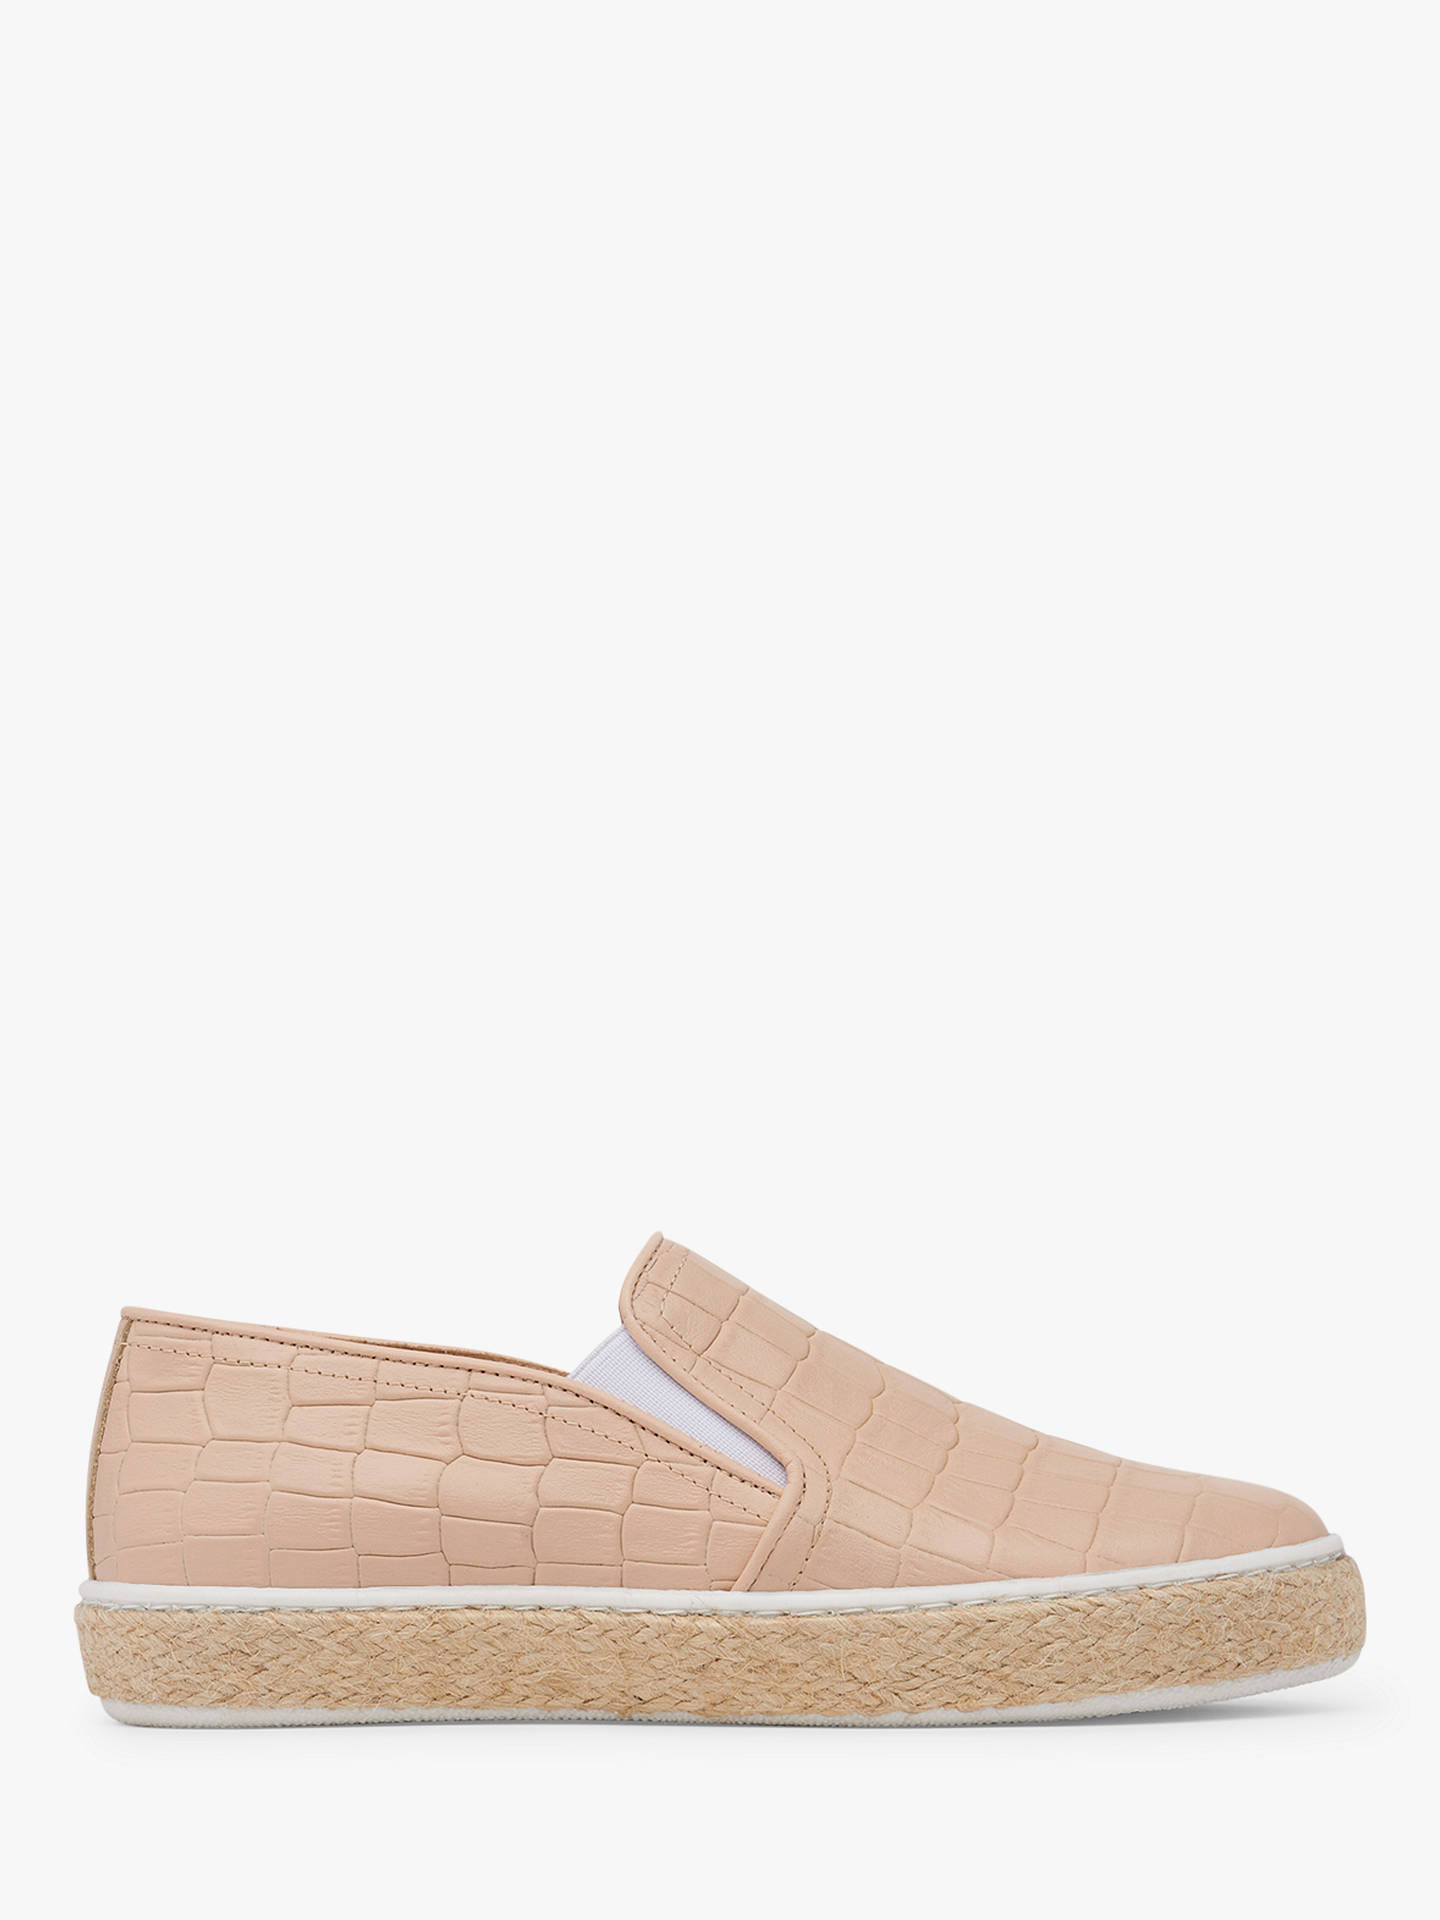 L.K.Bennett Juliana Slip On Plimsolls at John Lewis & Partners